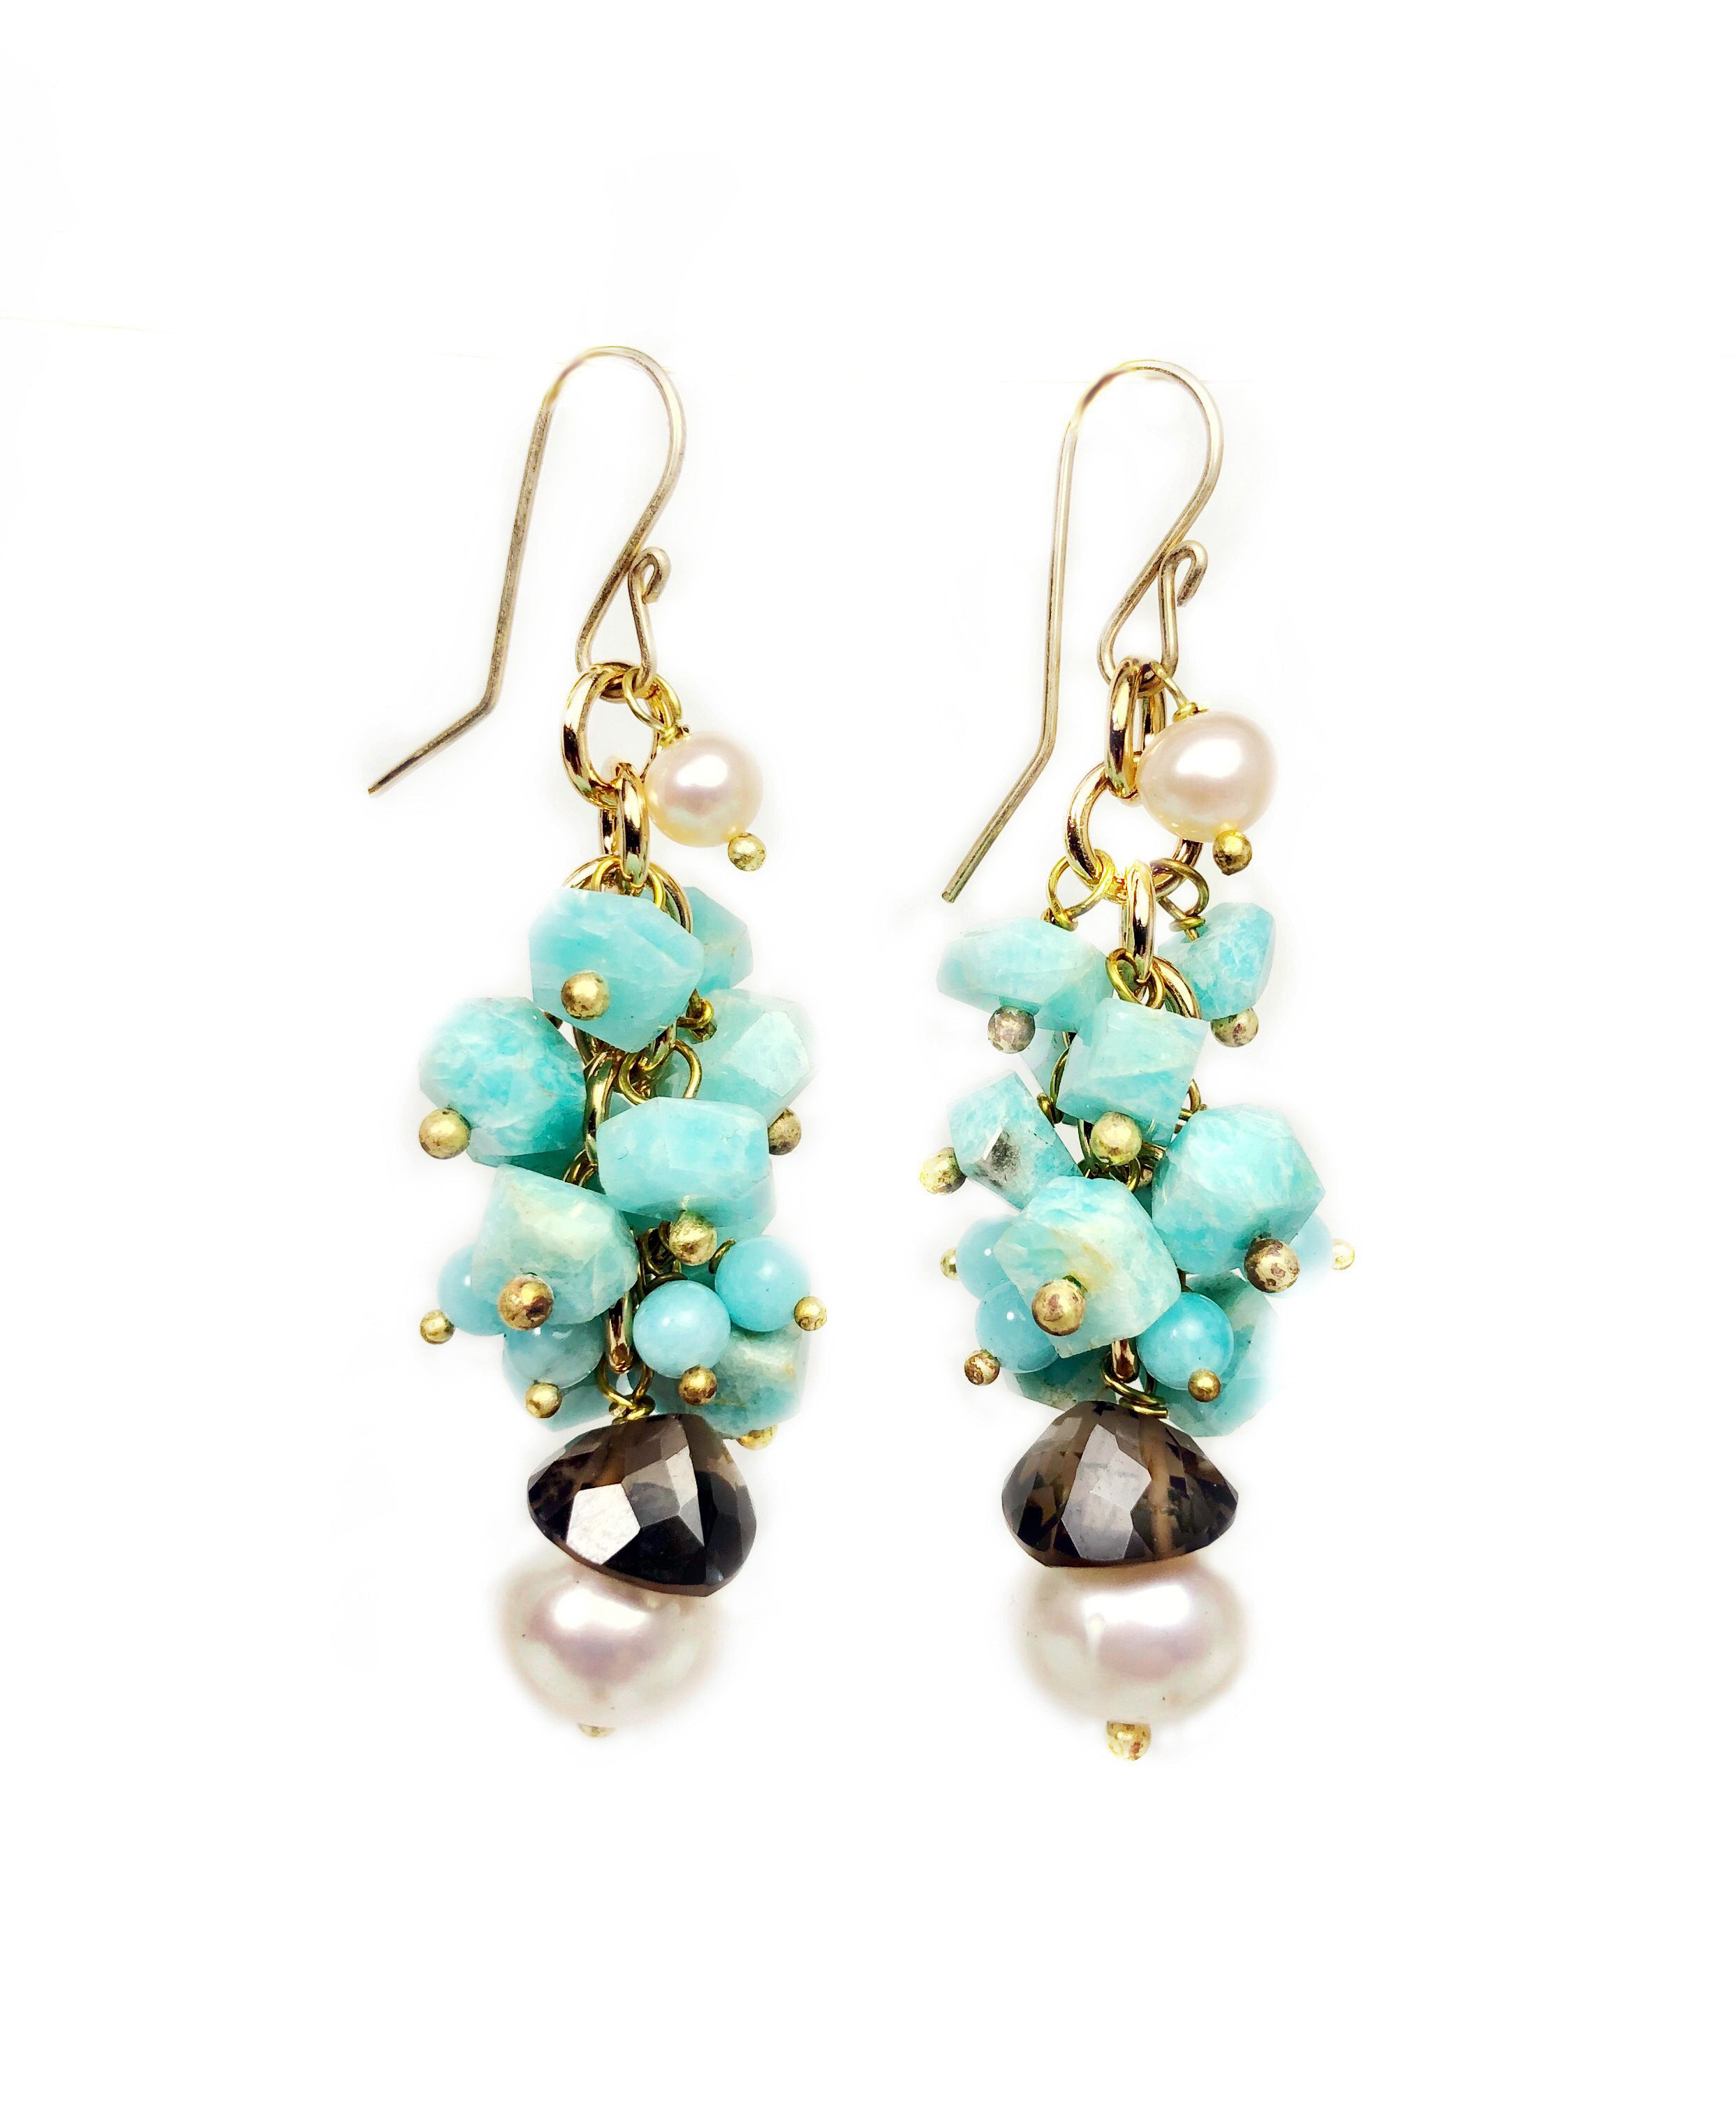 Twinkle Doom Earrings - Terry Schiefer